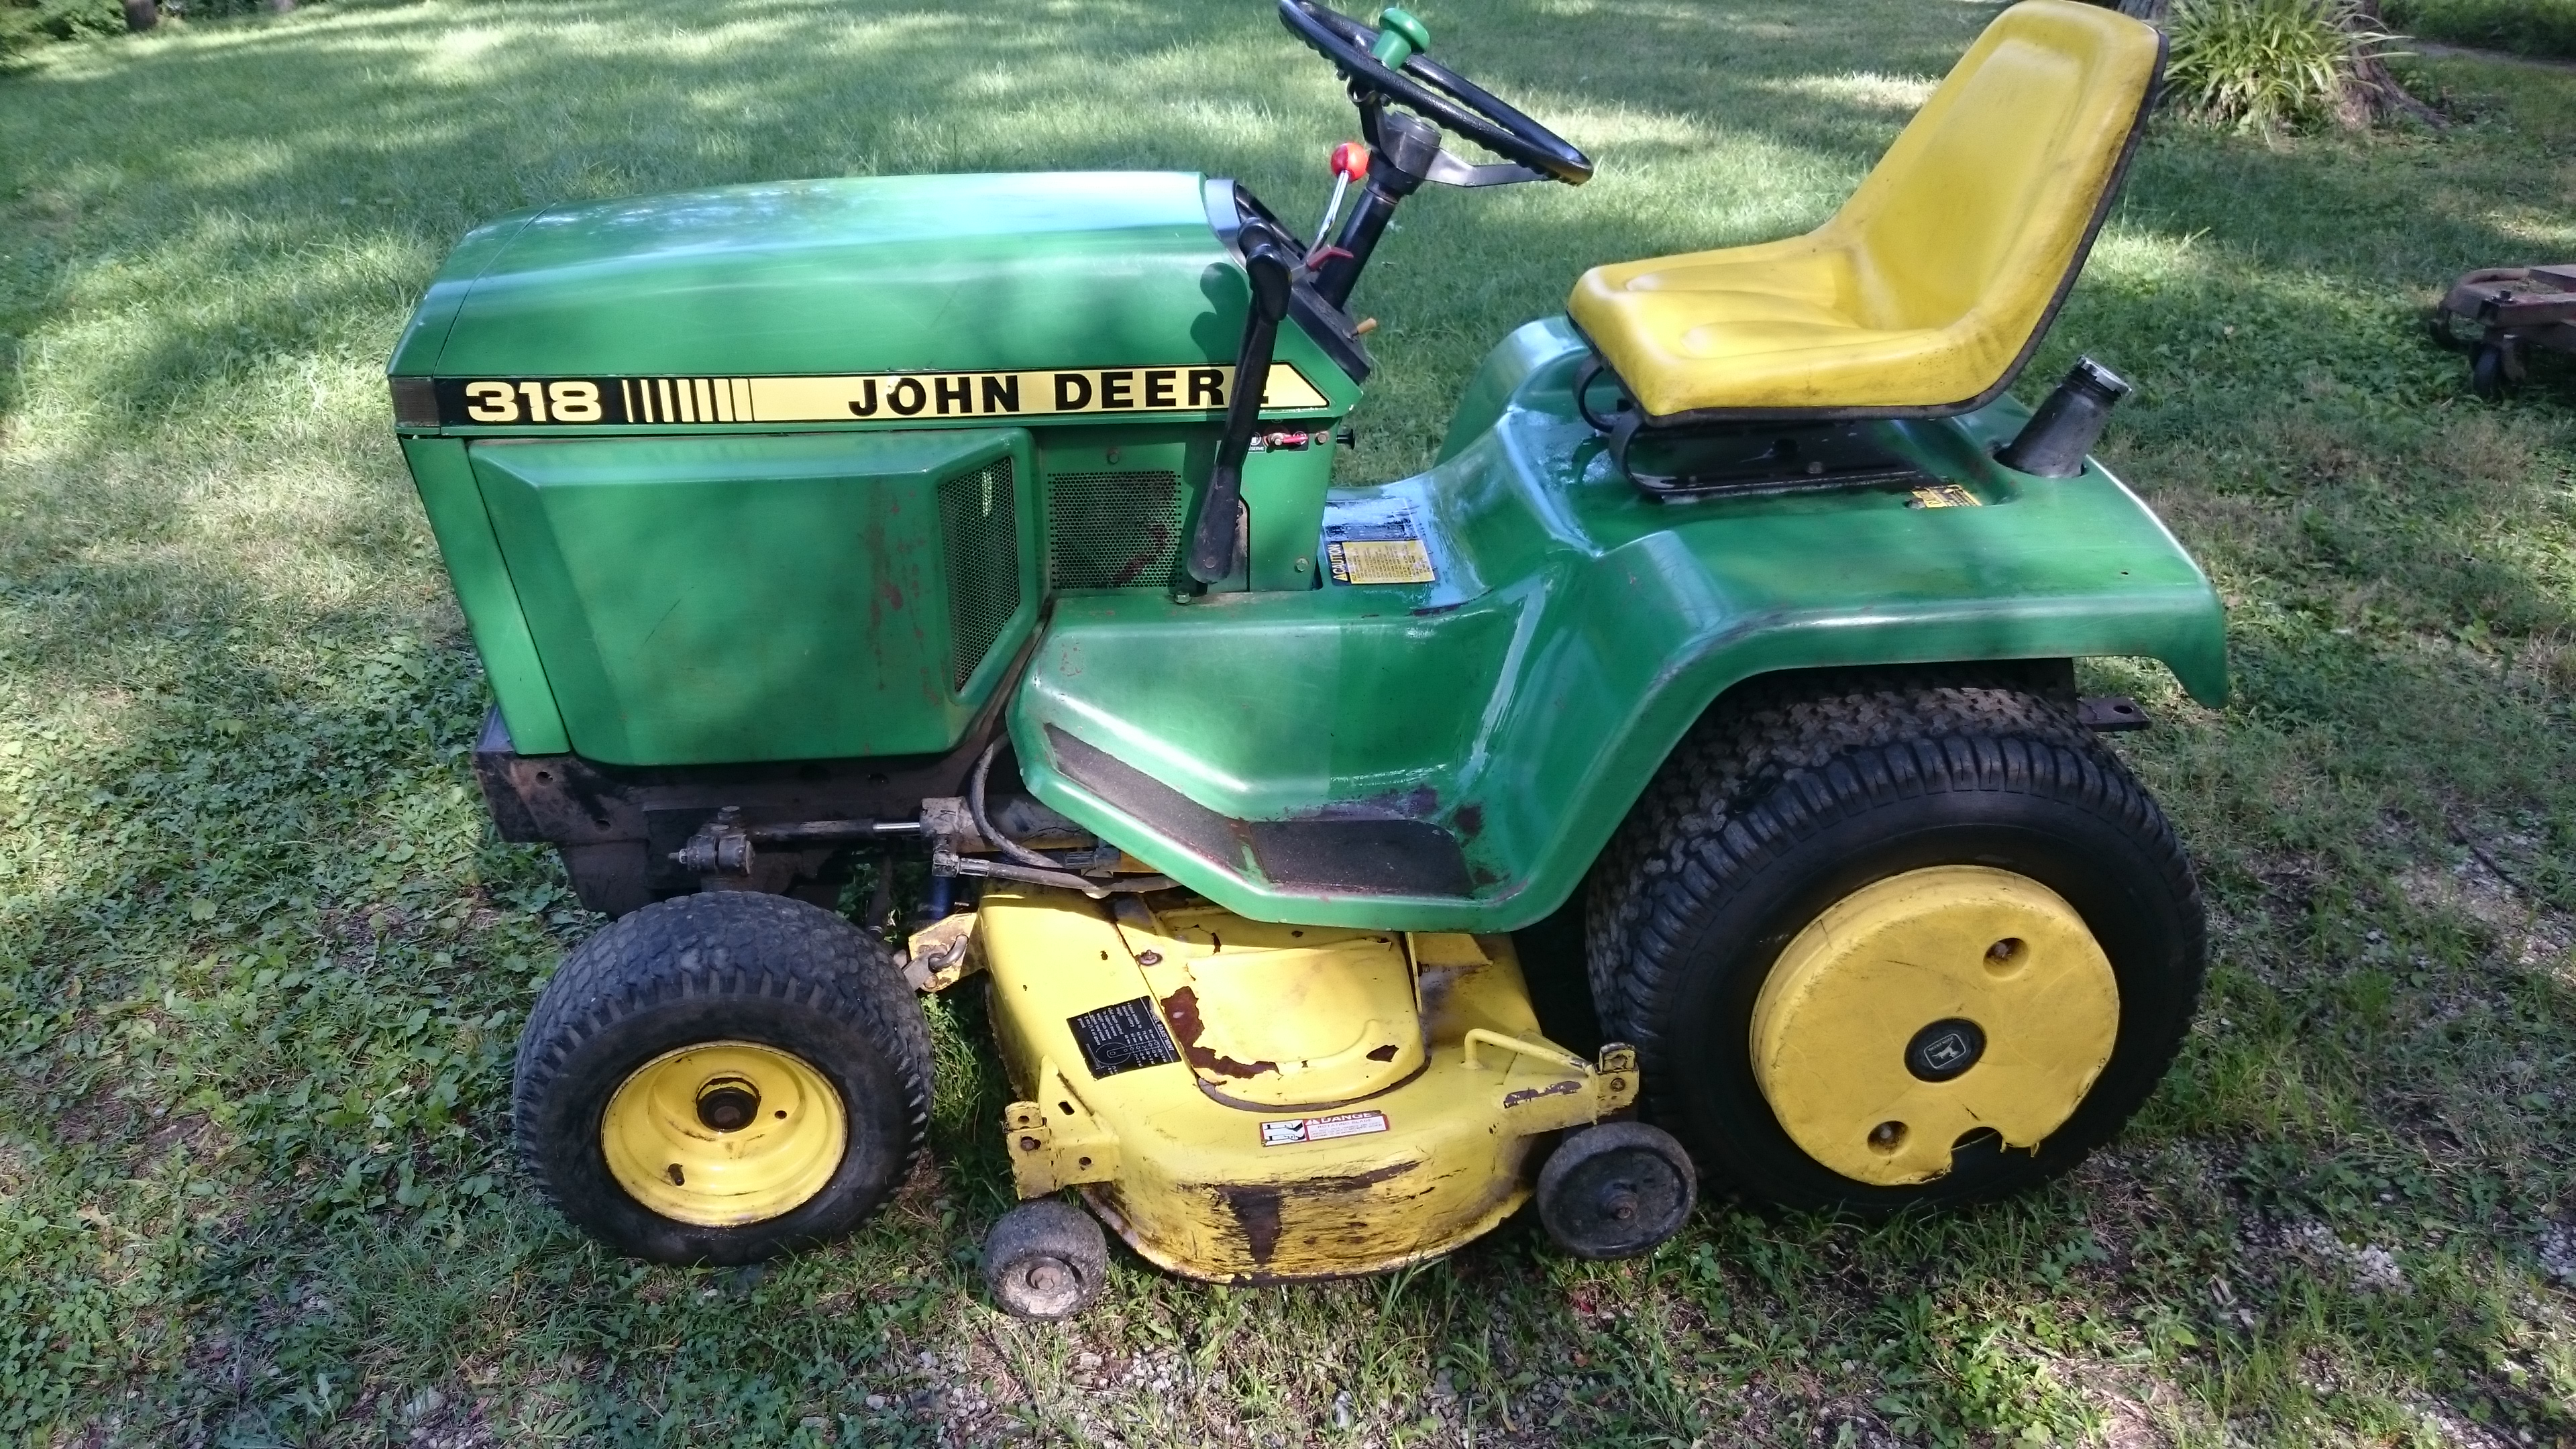 What's this 318 worth? - MyTractorForum com - The Friendliest